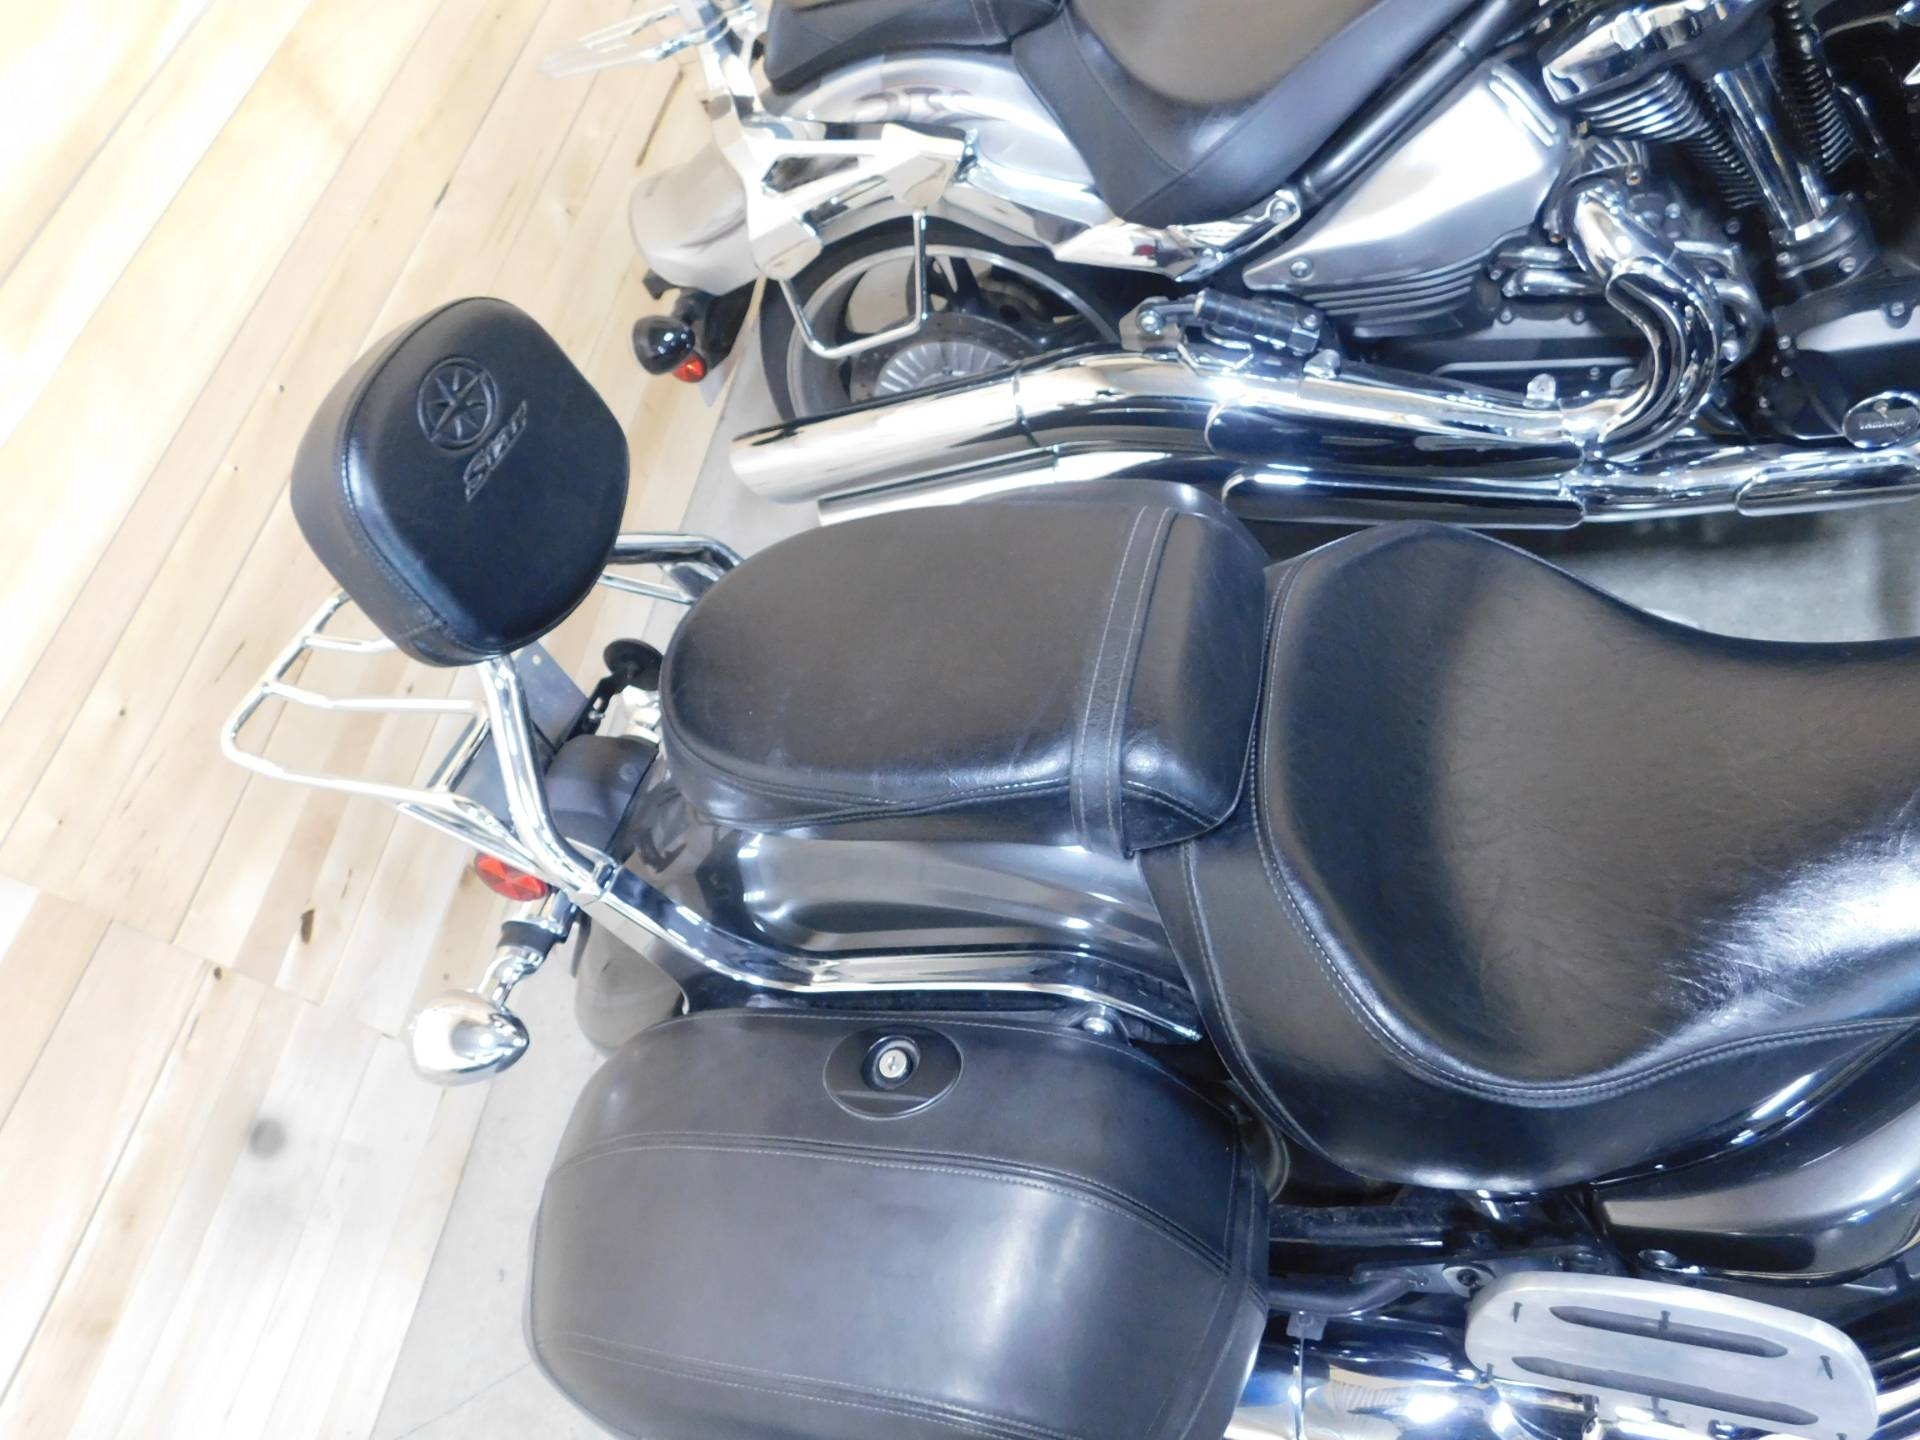 2012 Yamaha V Star 1300 Tourer in Sauk Rapids, Minnesota - Photo 5